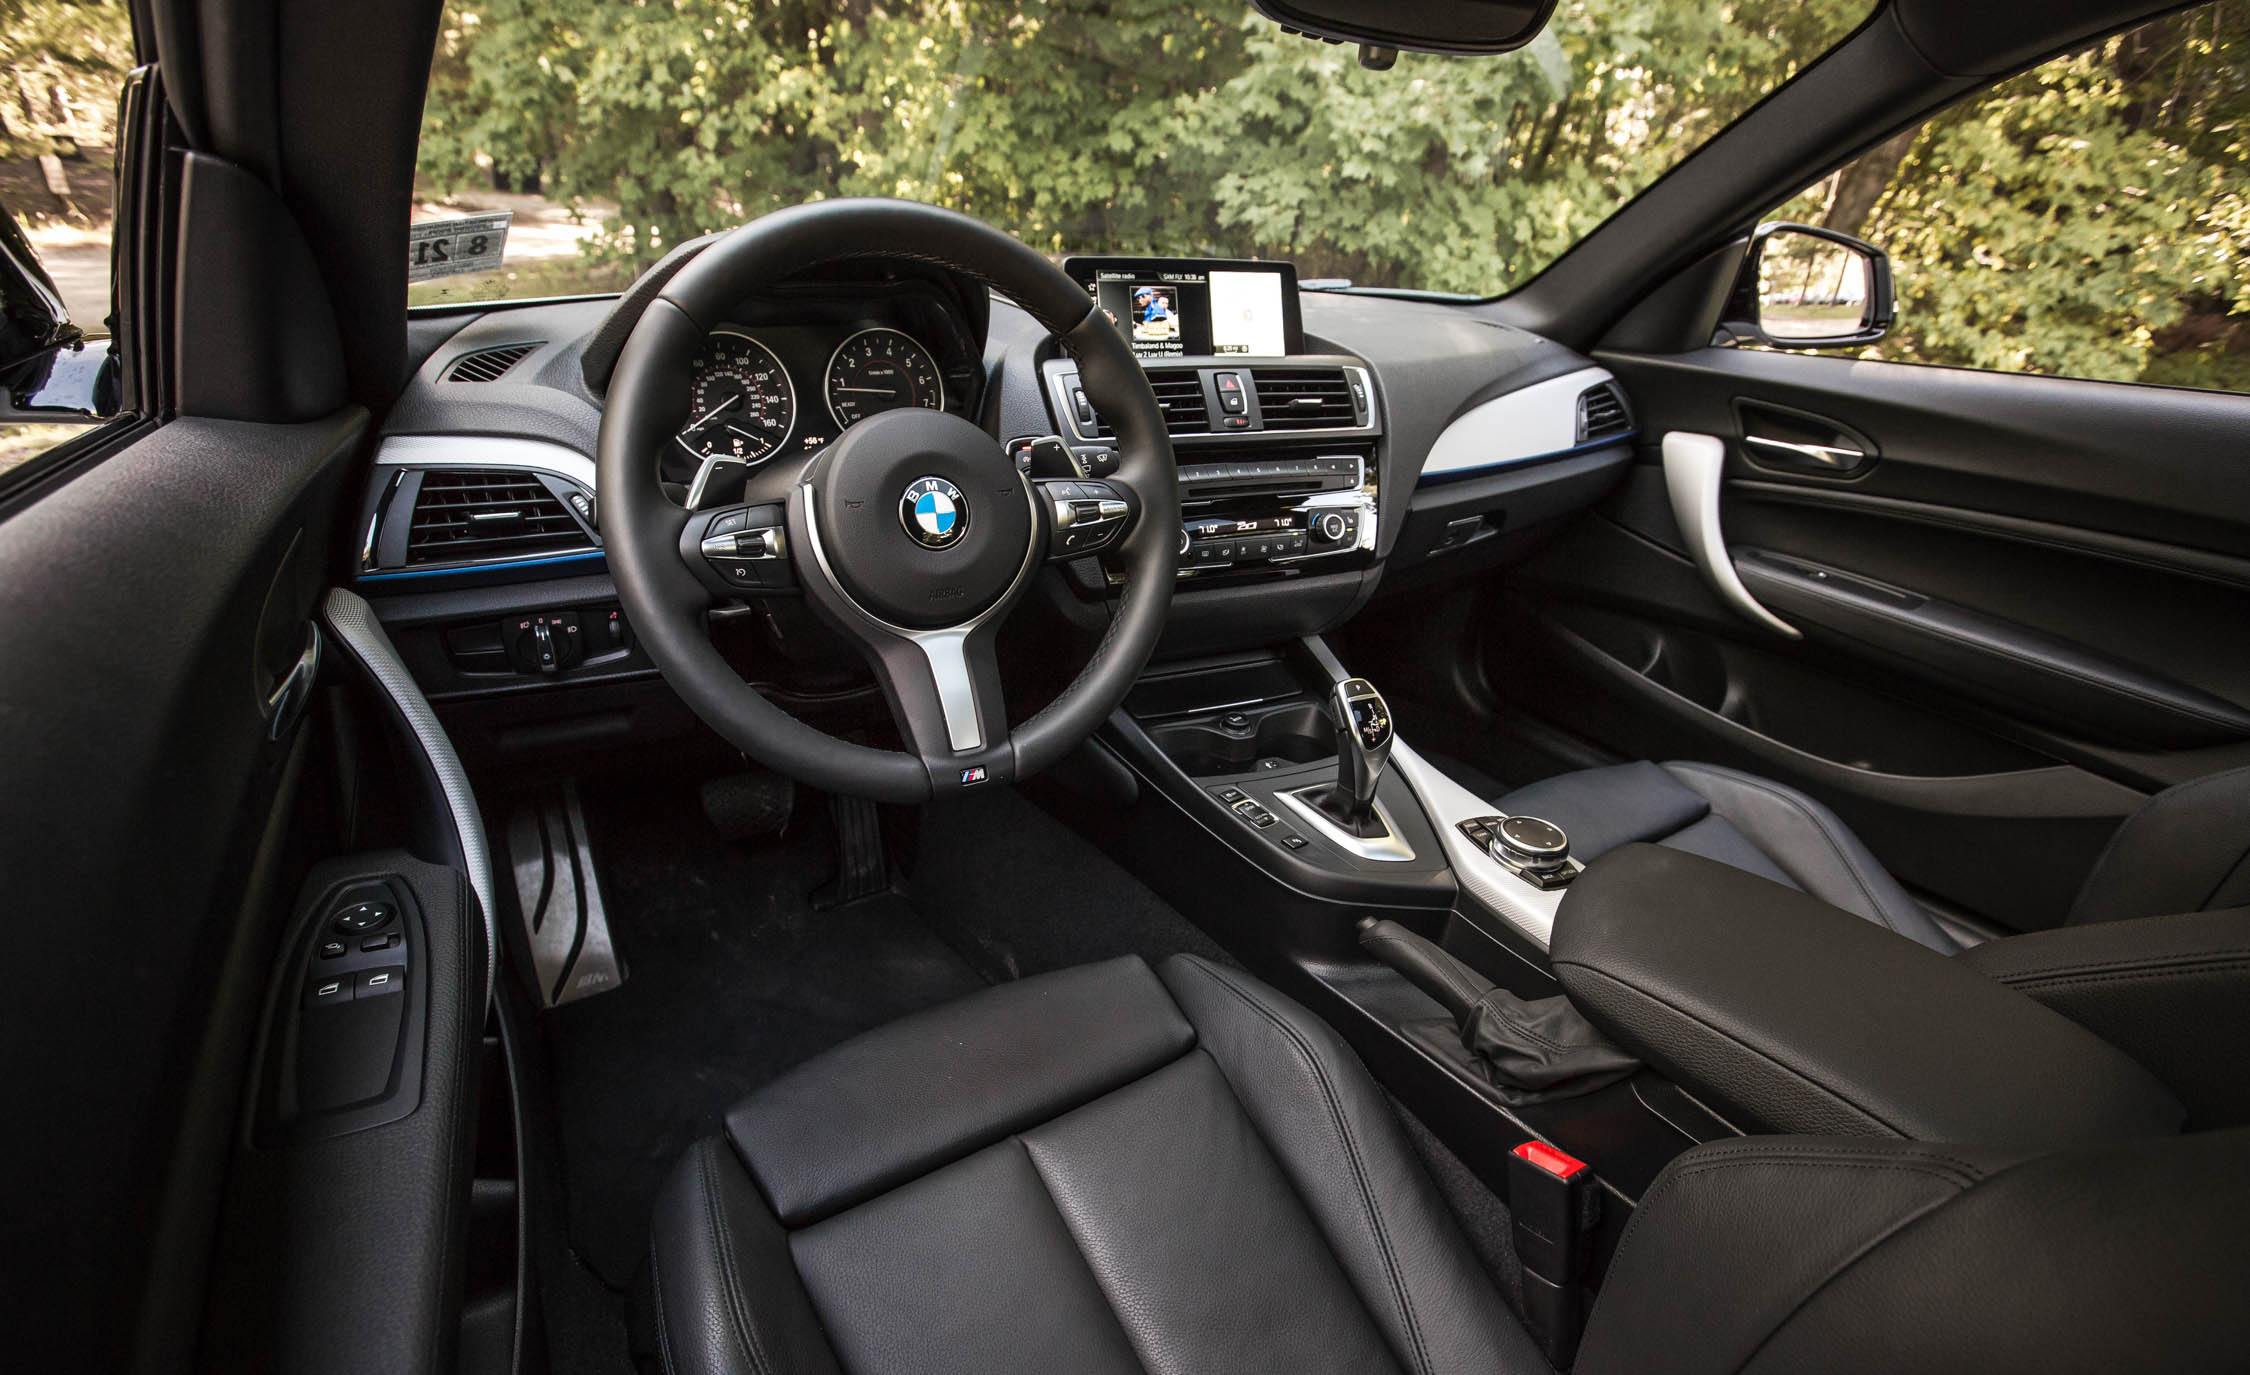 2017 BMW M240i Coupe Automatic Interior Driver Cockpit And Dash (View 16 of 36)